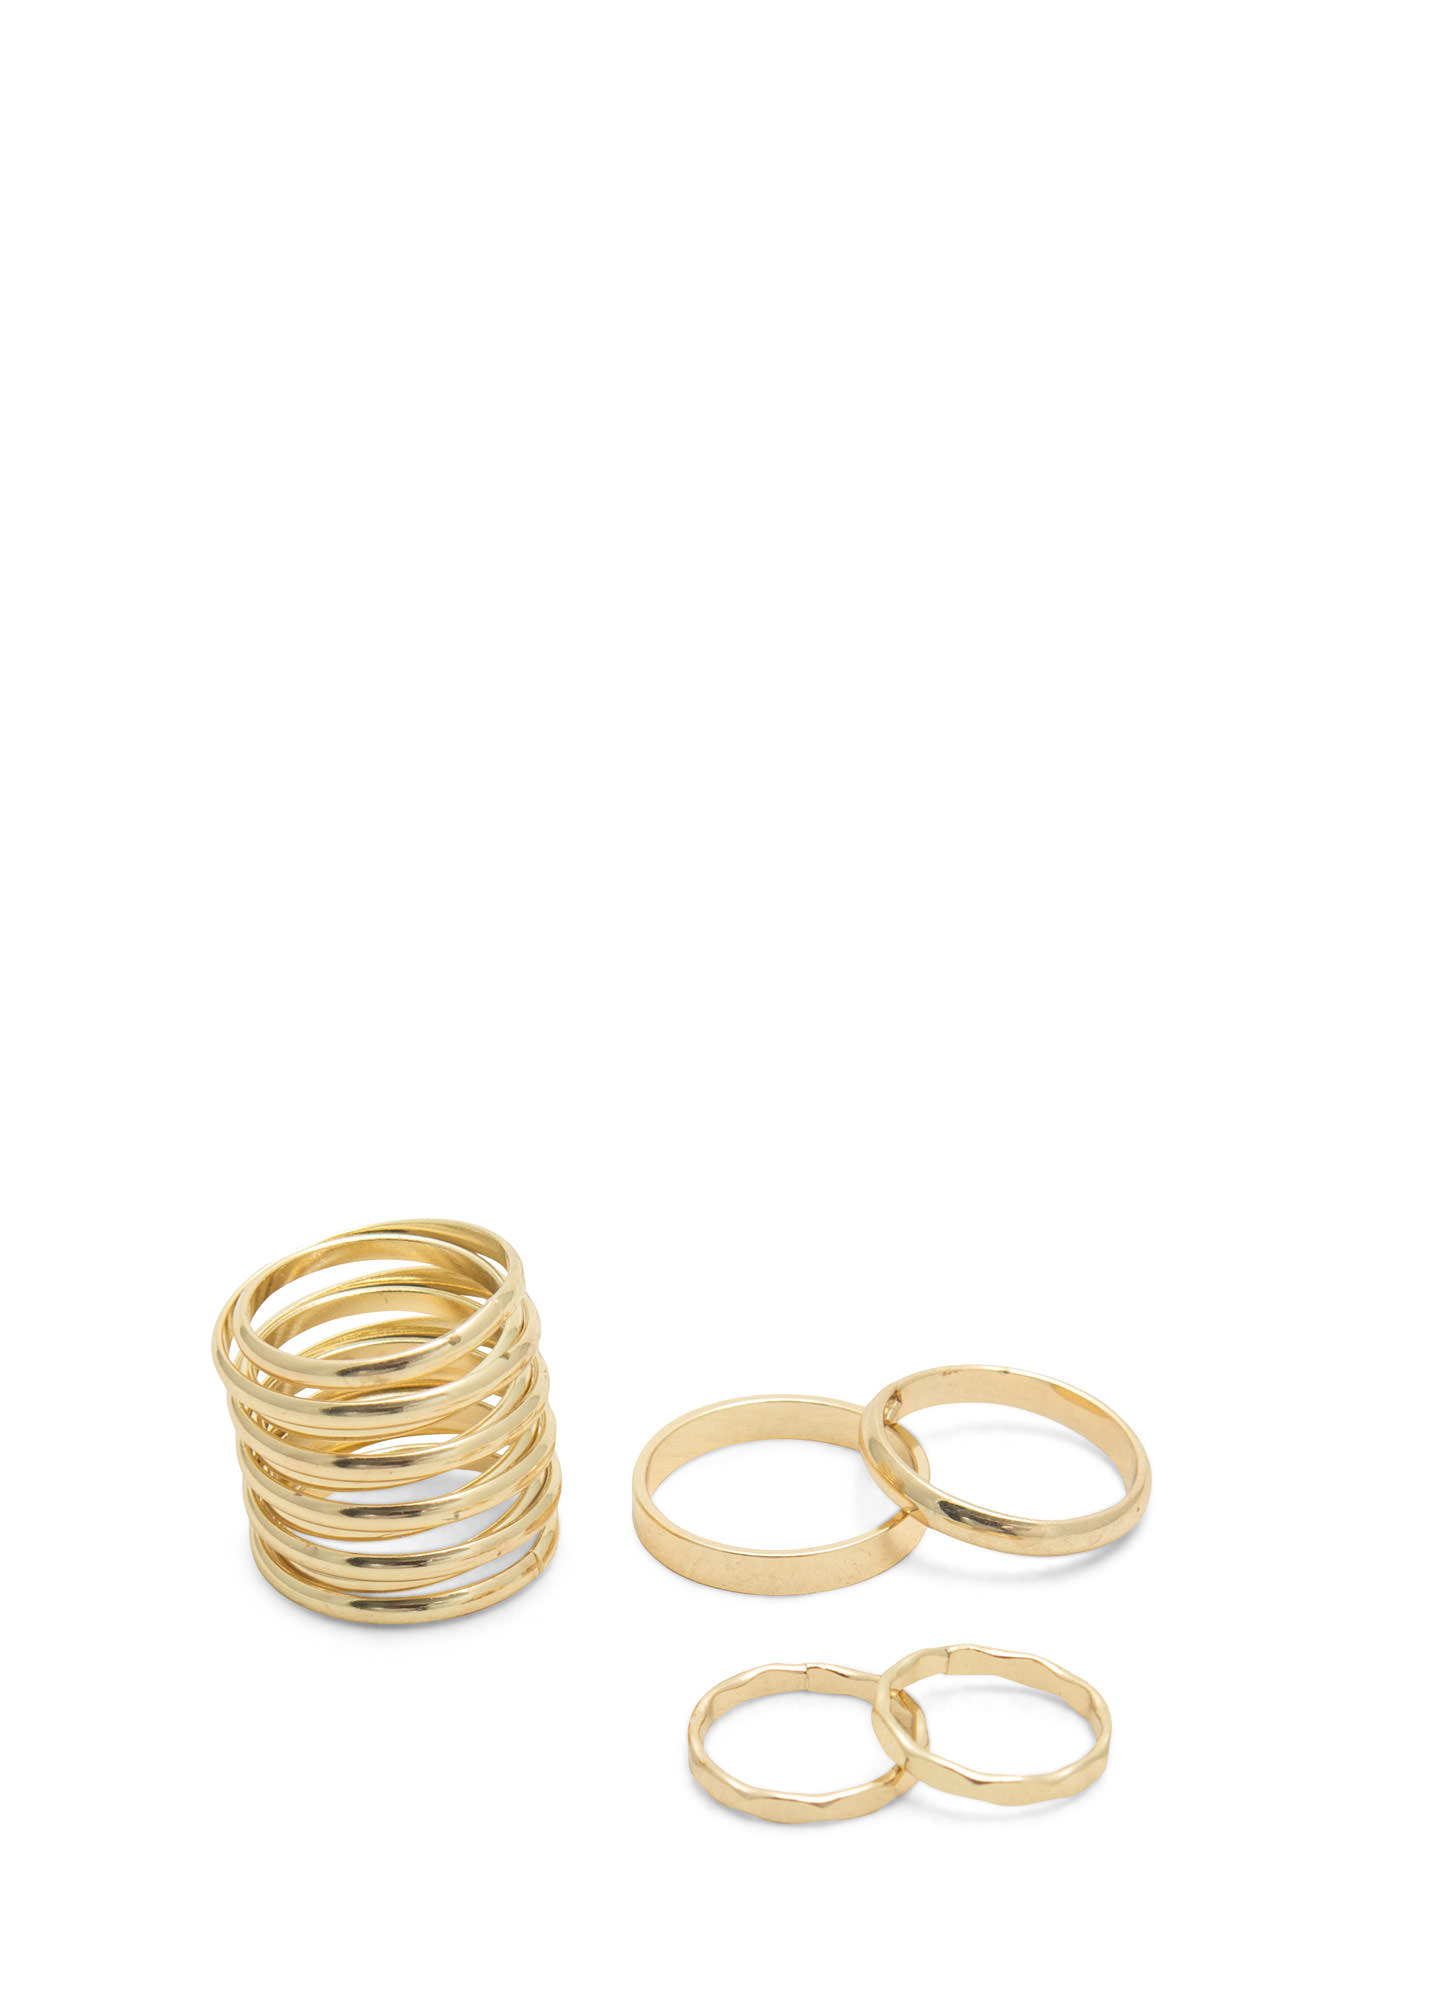 Coiled Ring Five Band Set GOLD